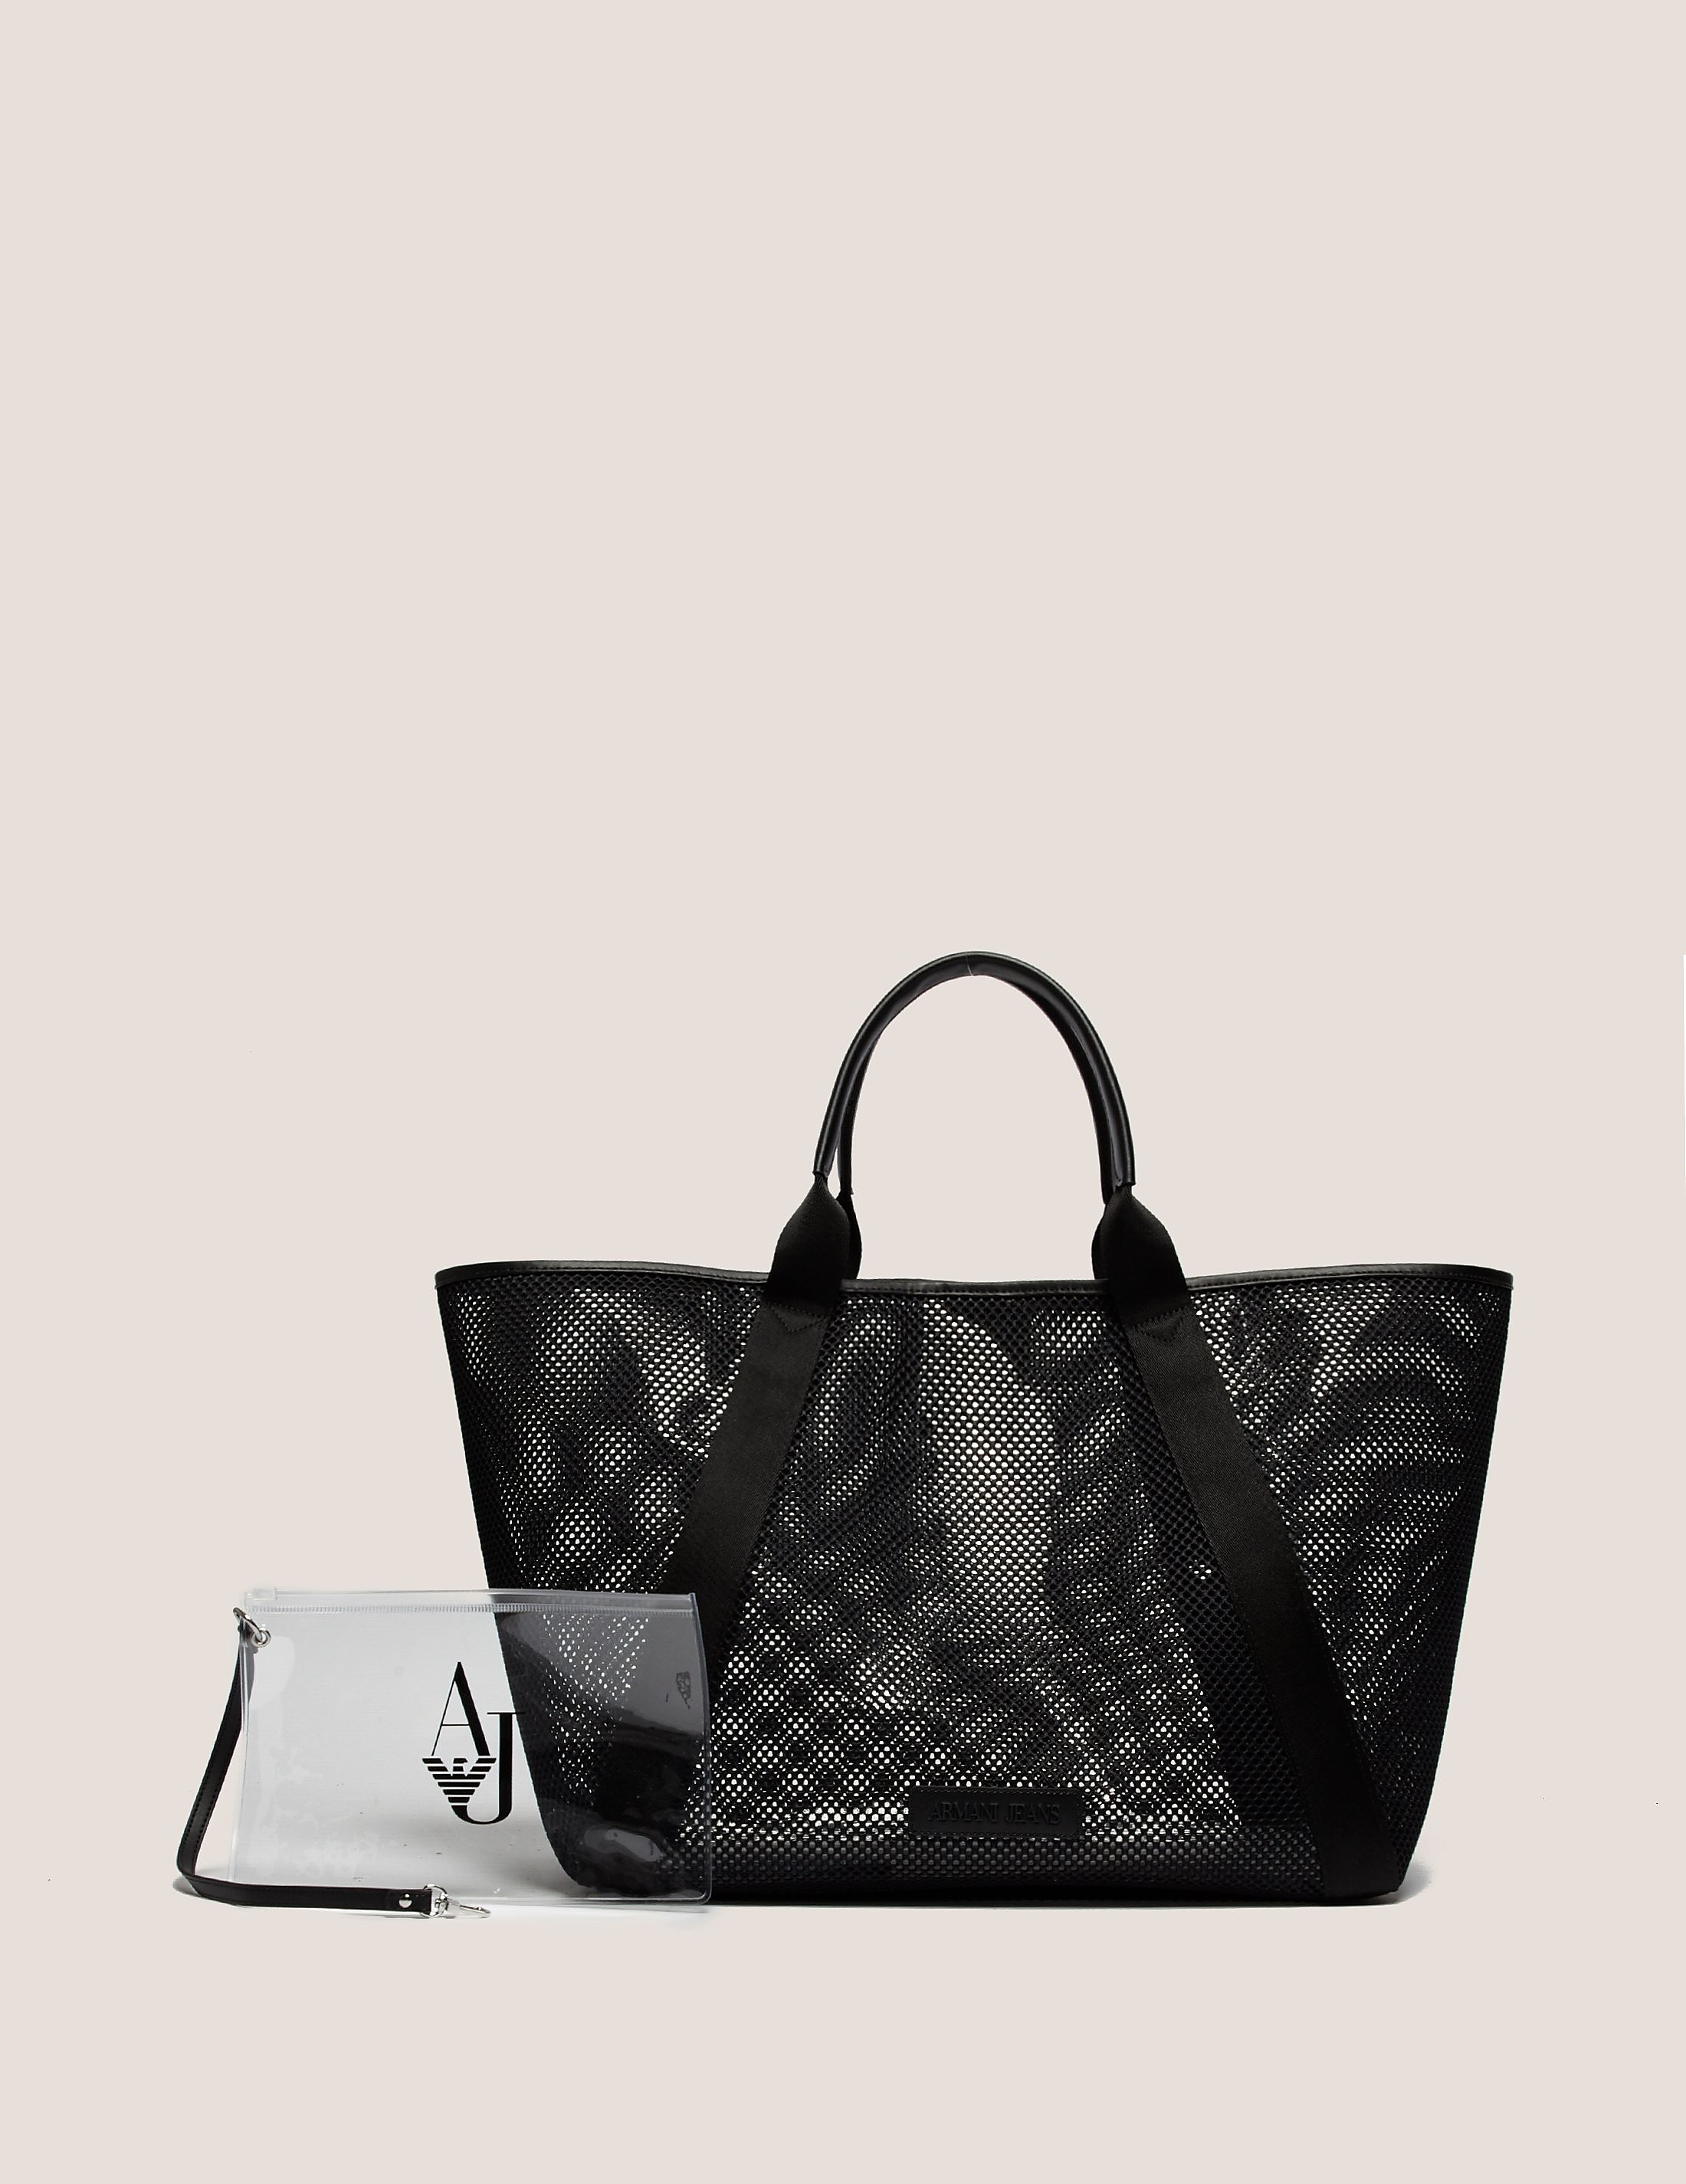 Emporio Armani Shopping Bag